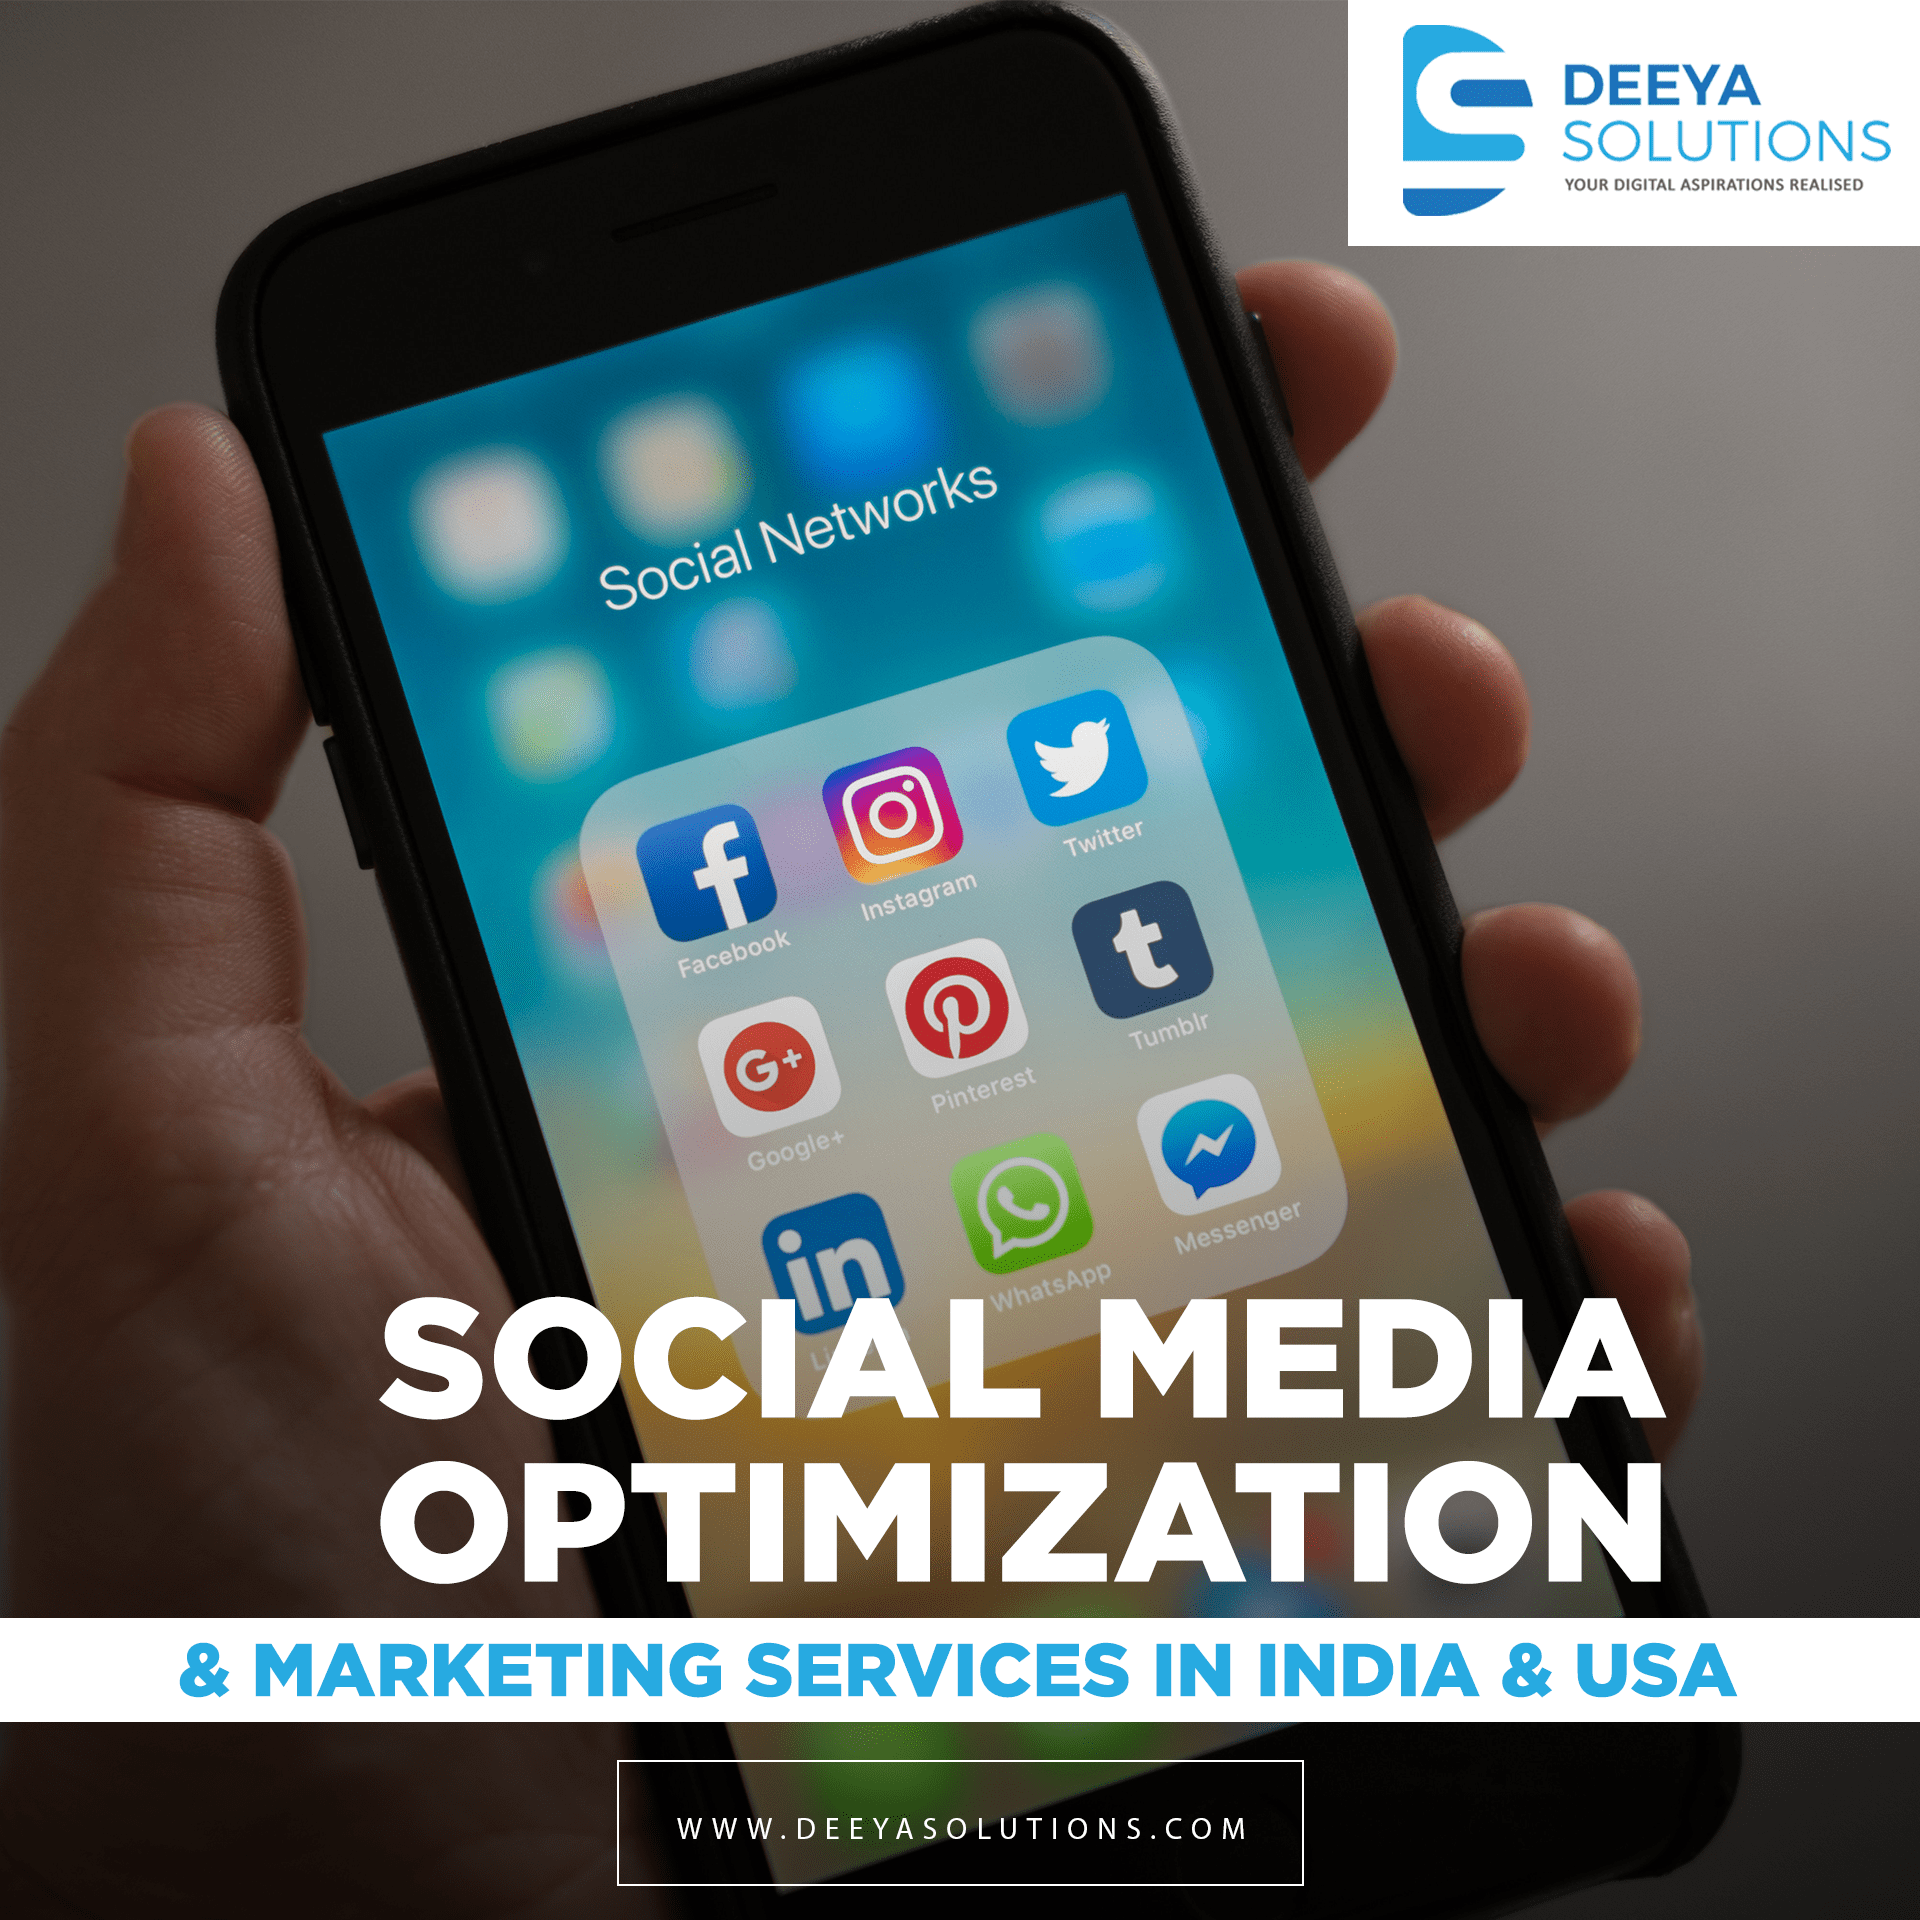 Social Media Marketing Services in India & USA